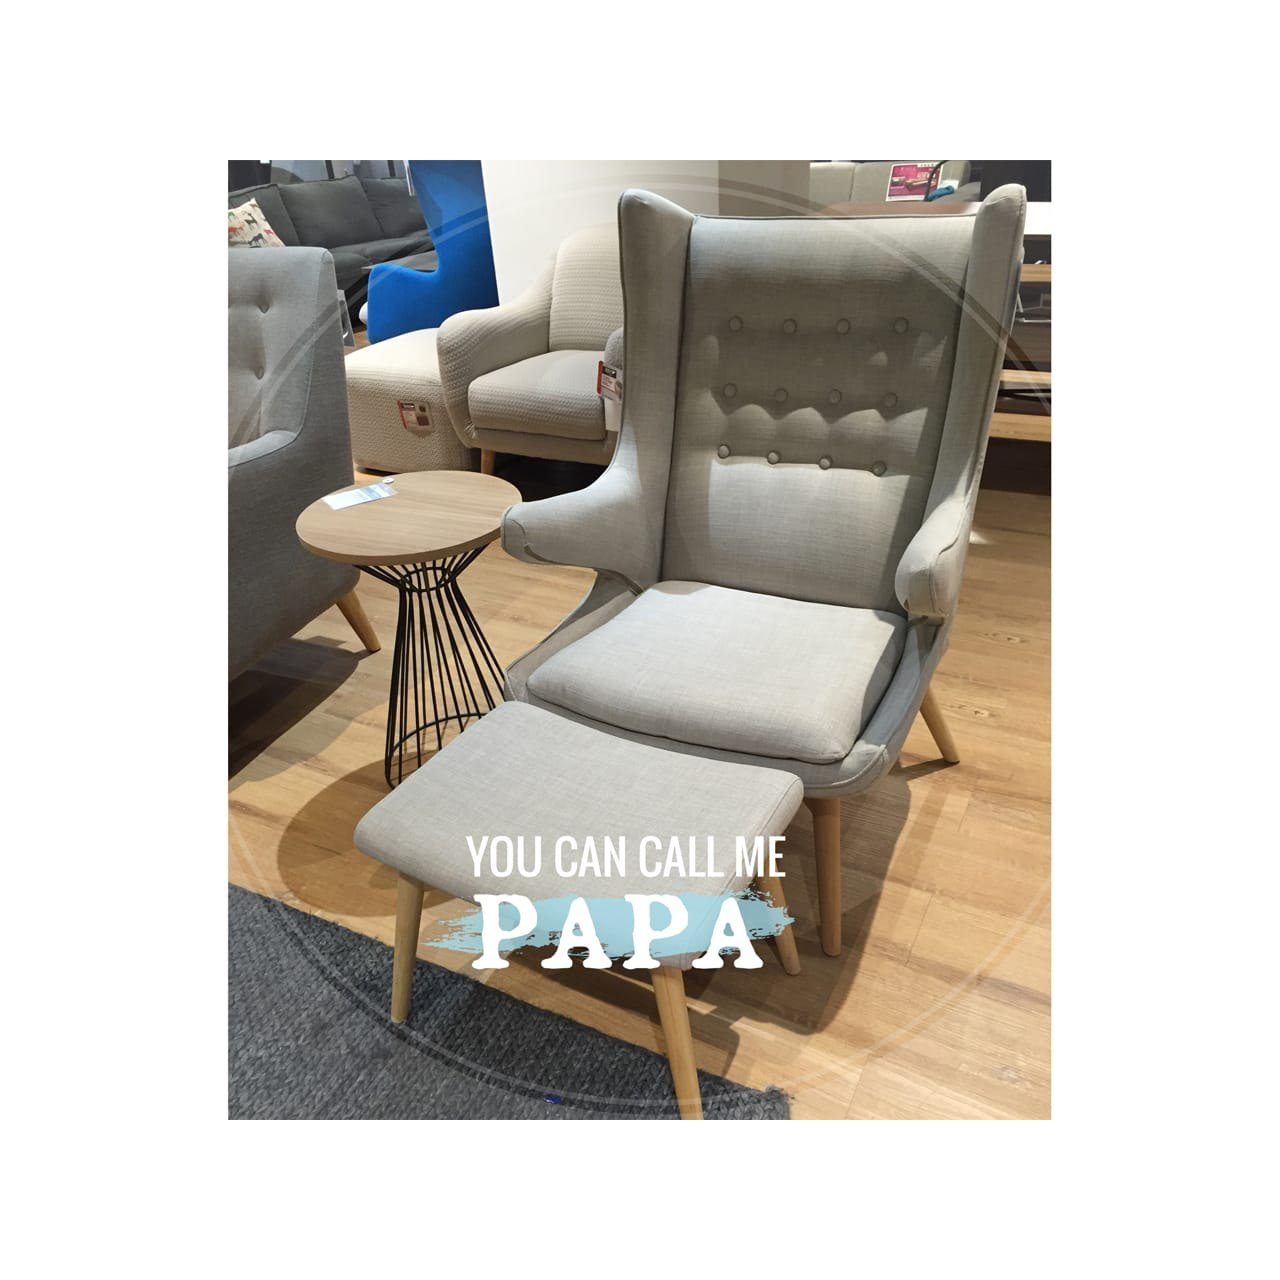 Papa Lounger Replica Comfort Design The Chair